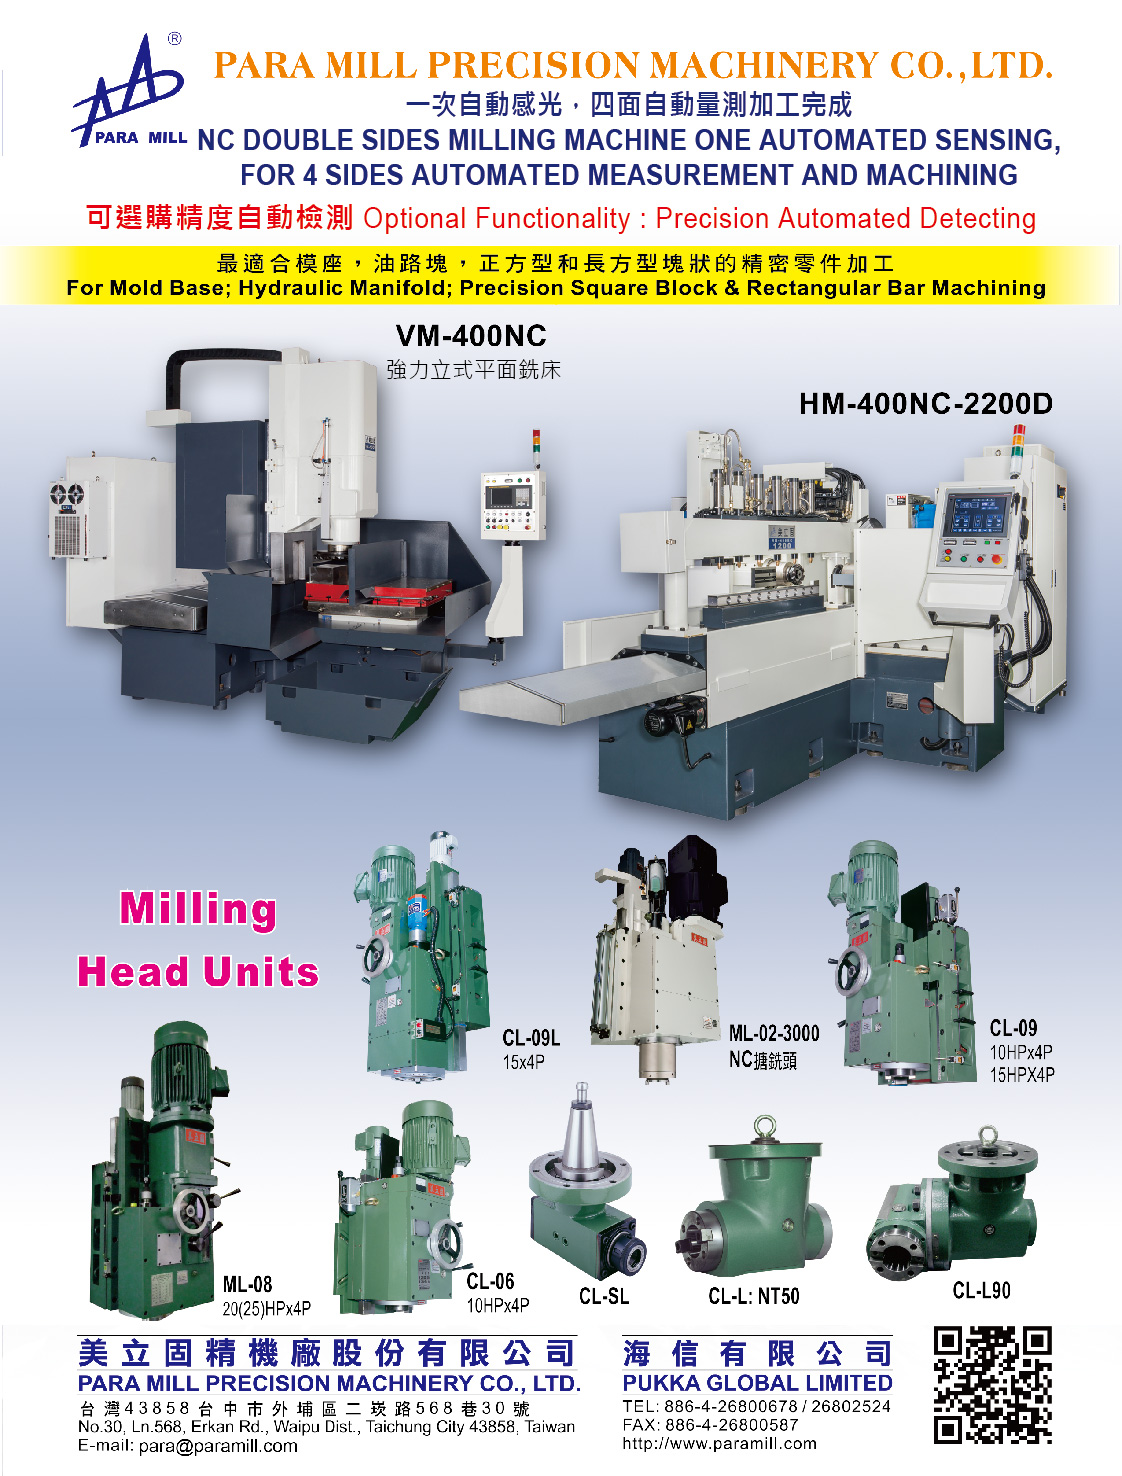 PARA MILL PRECISION MACHINERY CO., LTD.